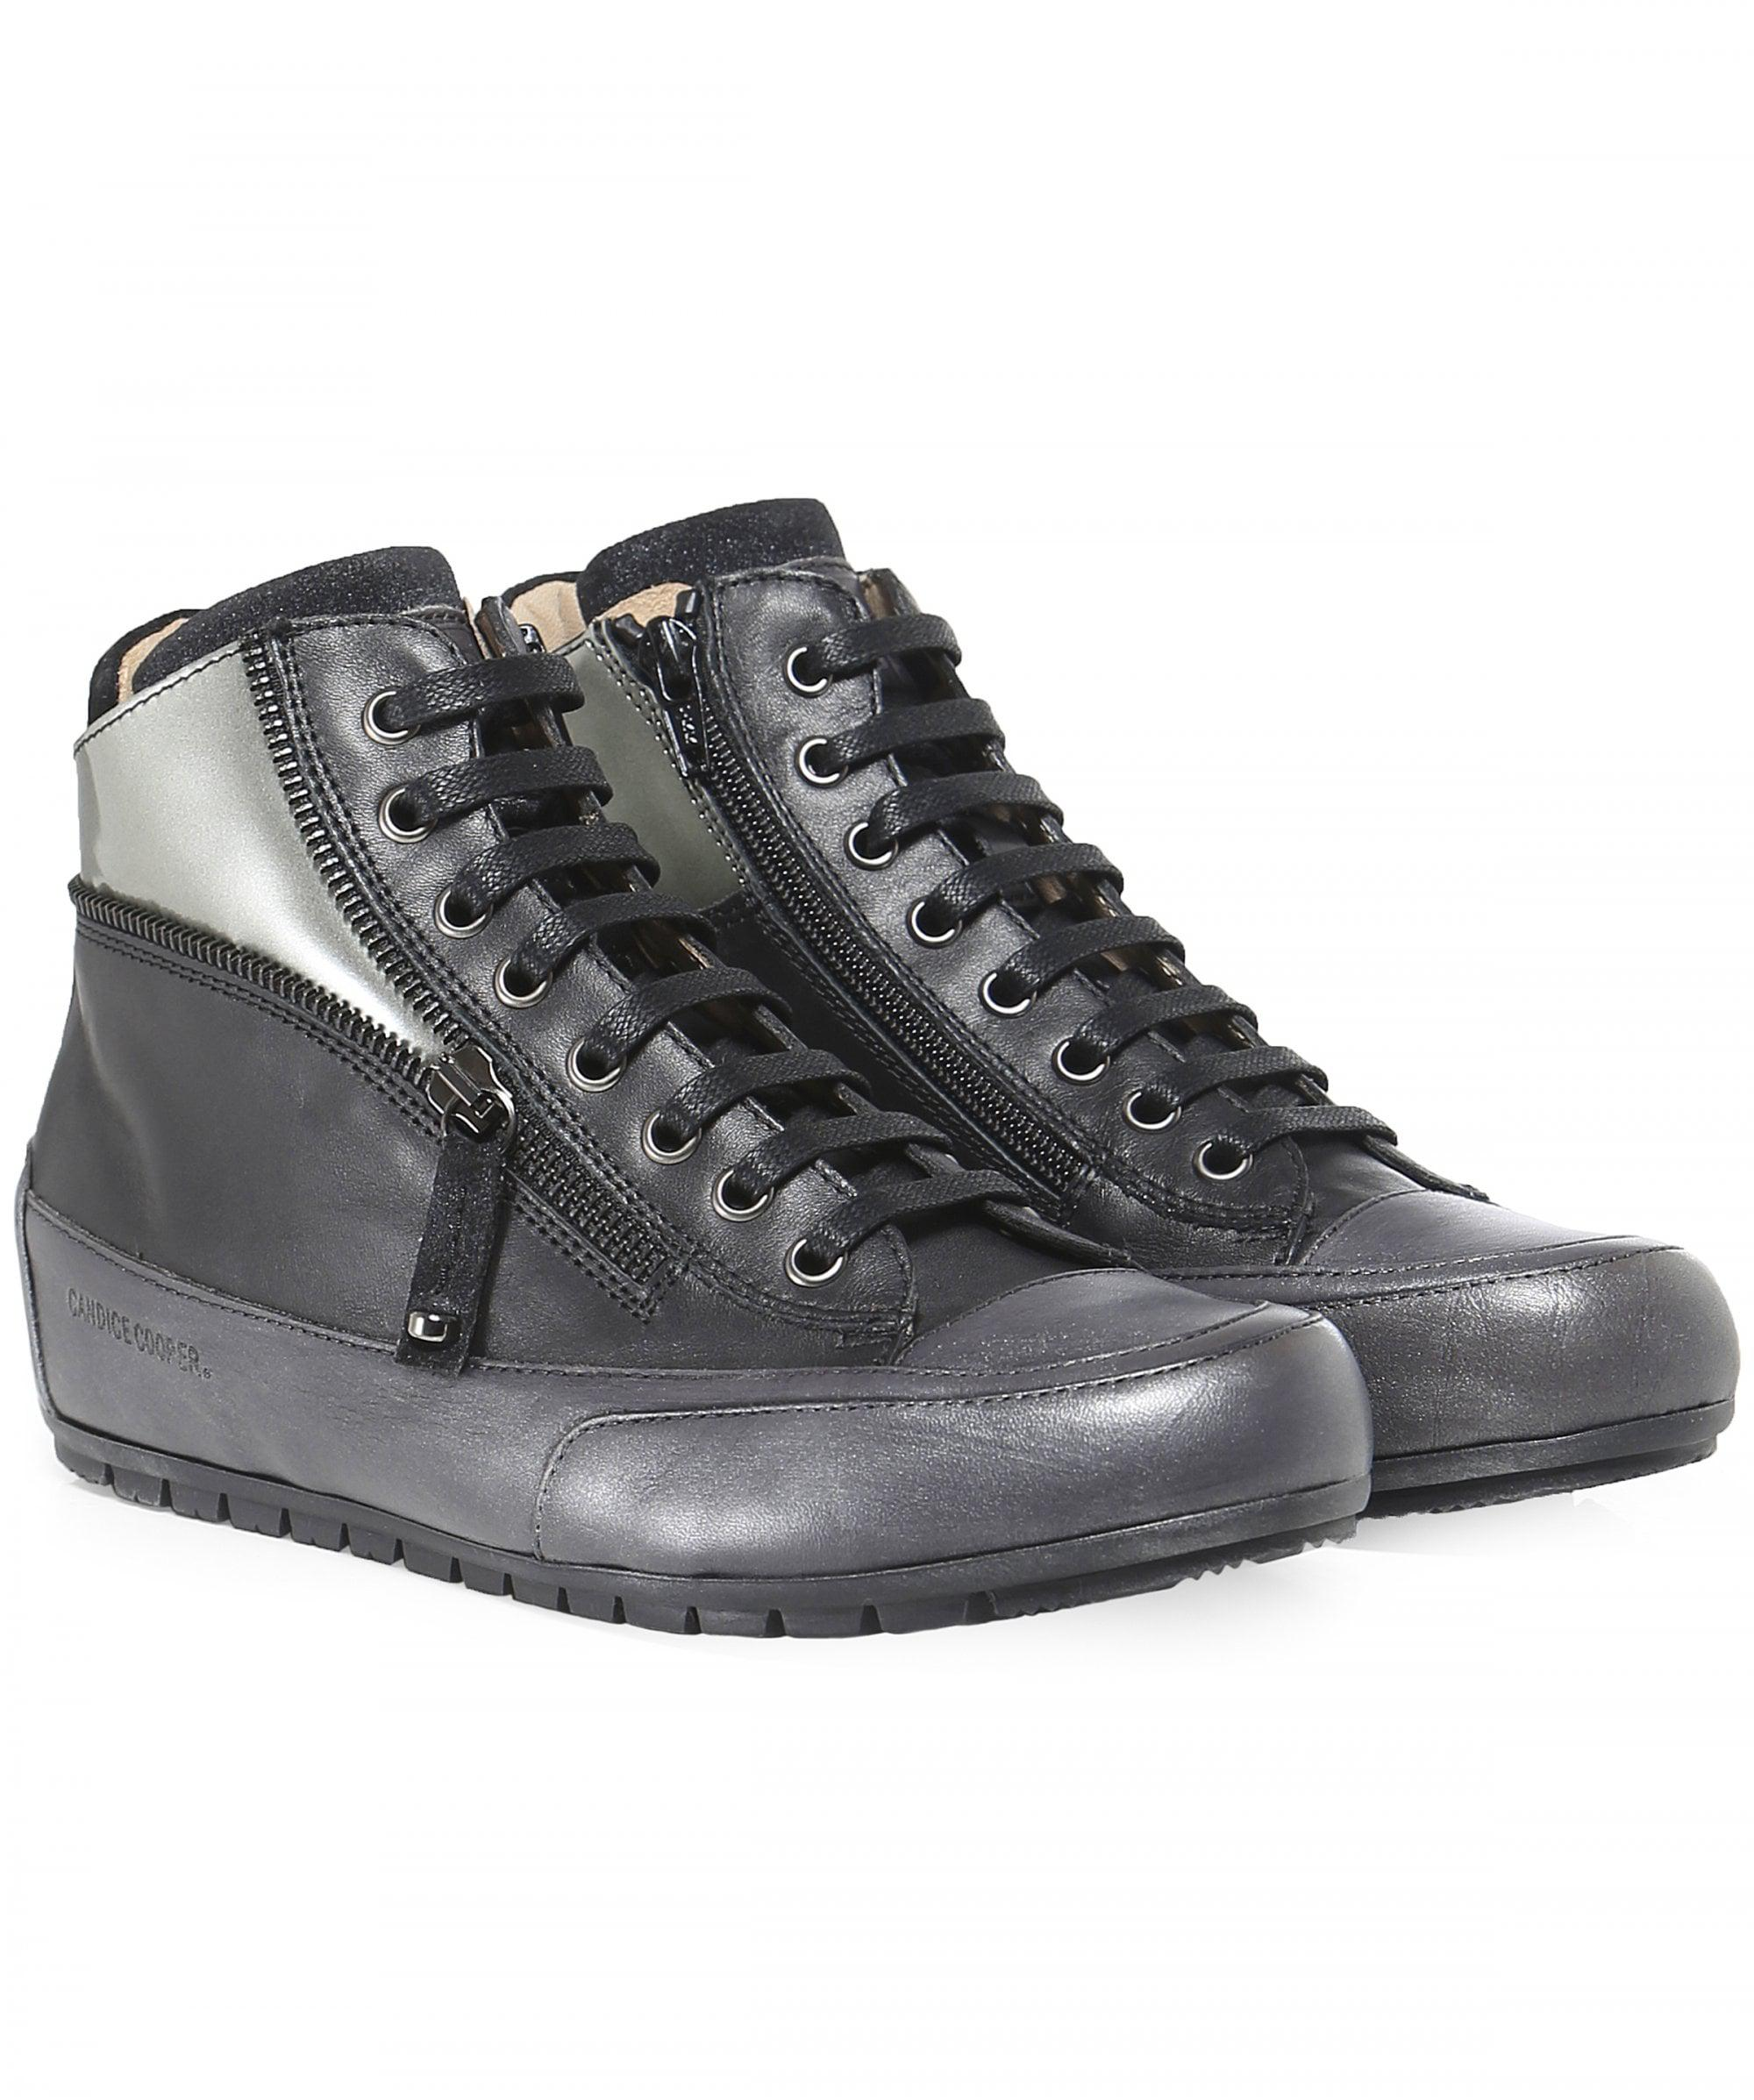 d1bc0735900d4 Candice Cooper Beverly High Top Trainers in Black - Save ...